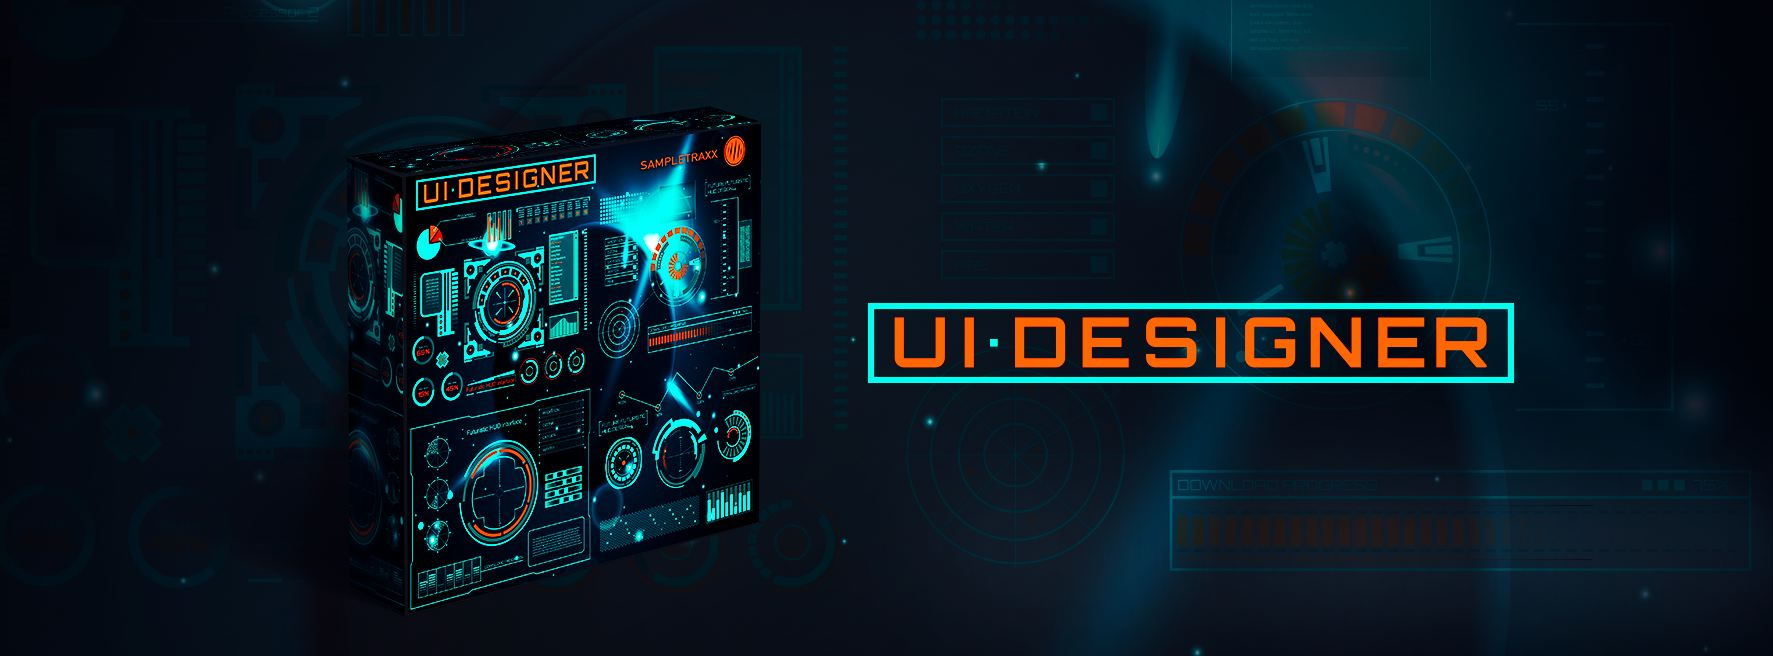 UI DESIGNER is an advanced soundset dedicated to the interaction between human and machines.